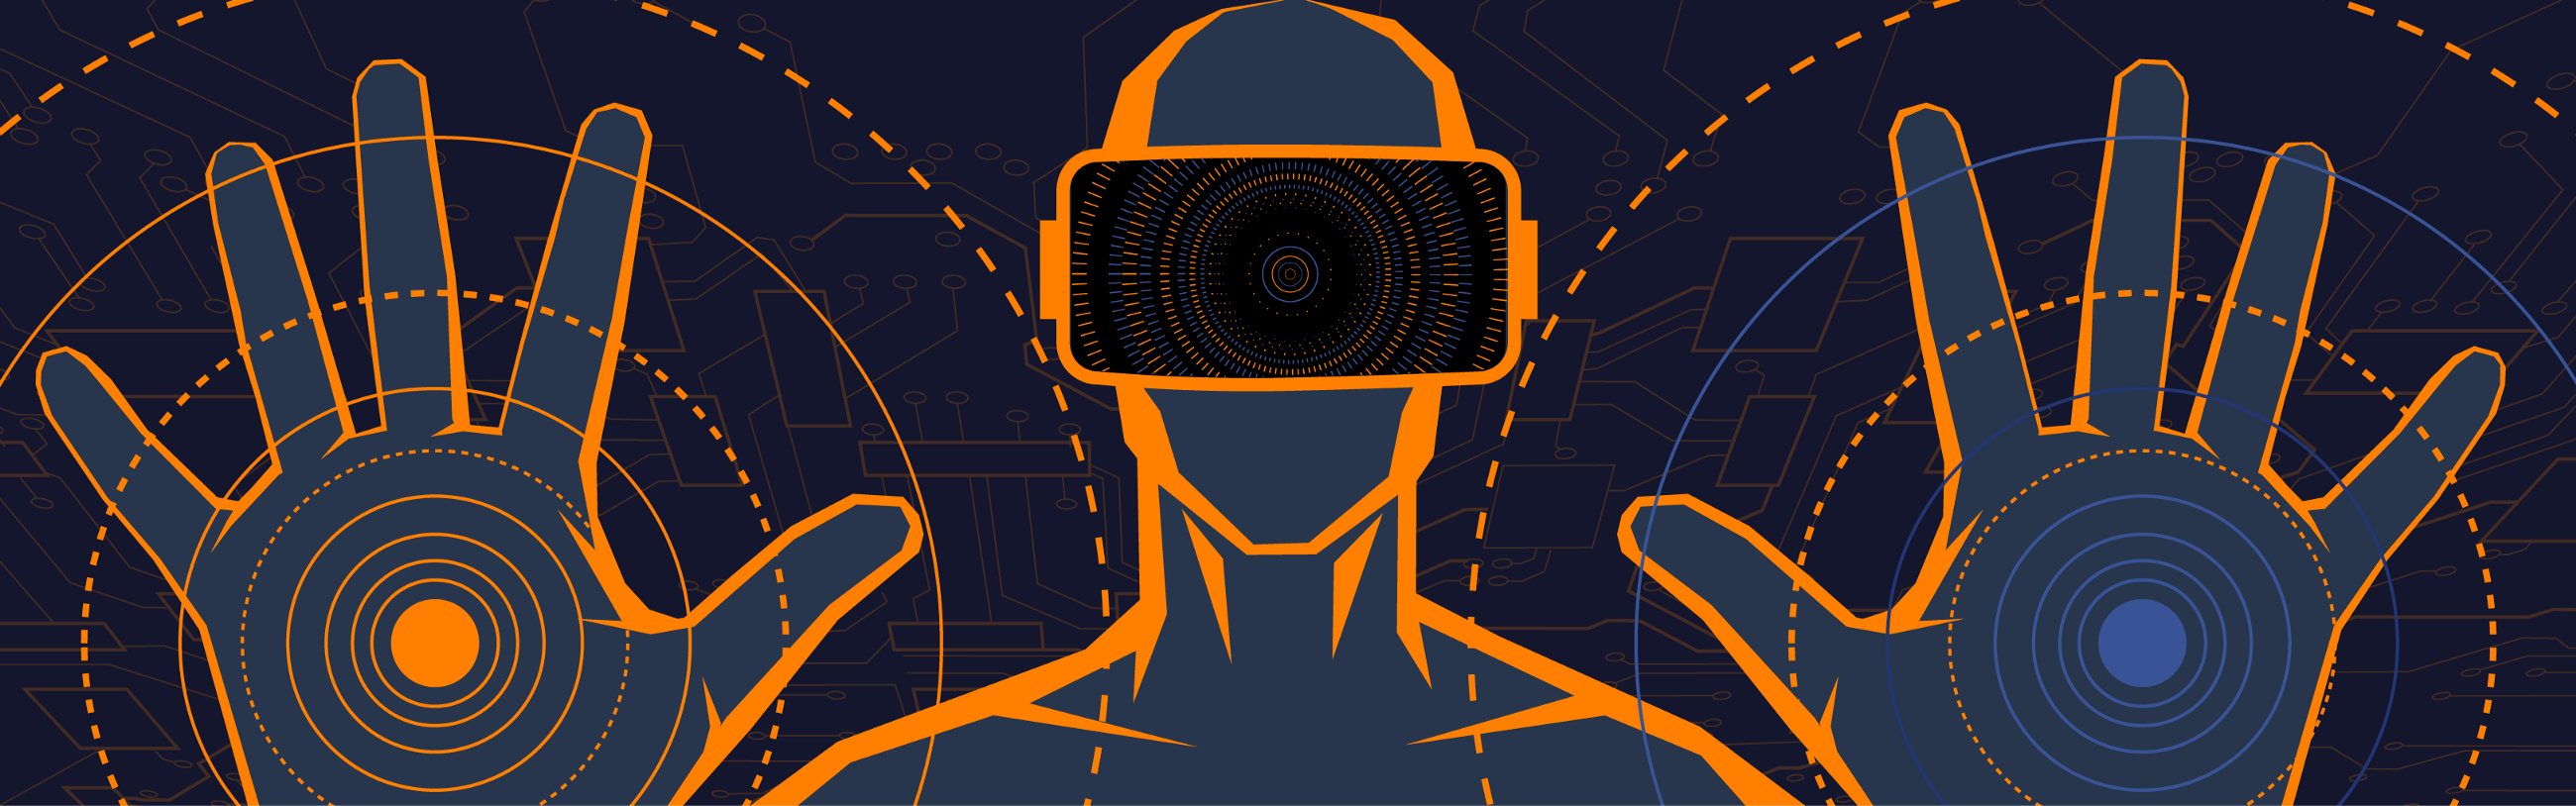 6d3158a5c58d Gaming in 2020  How VR and Blockchains Will Transform Digital Worlds